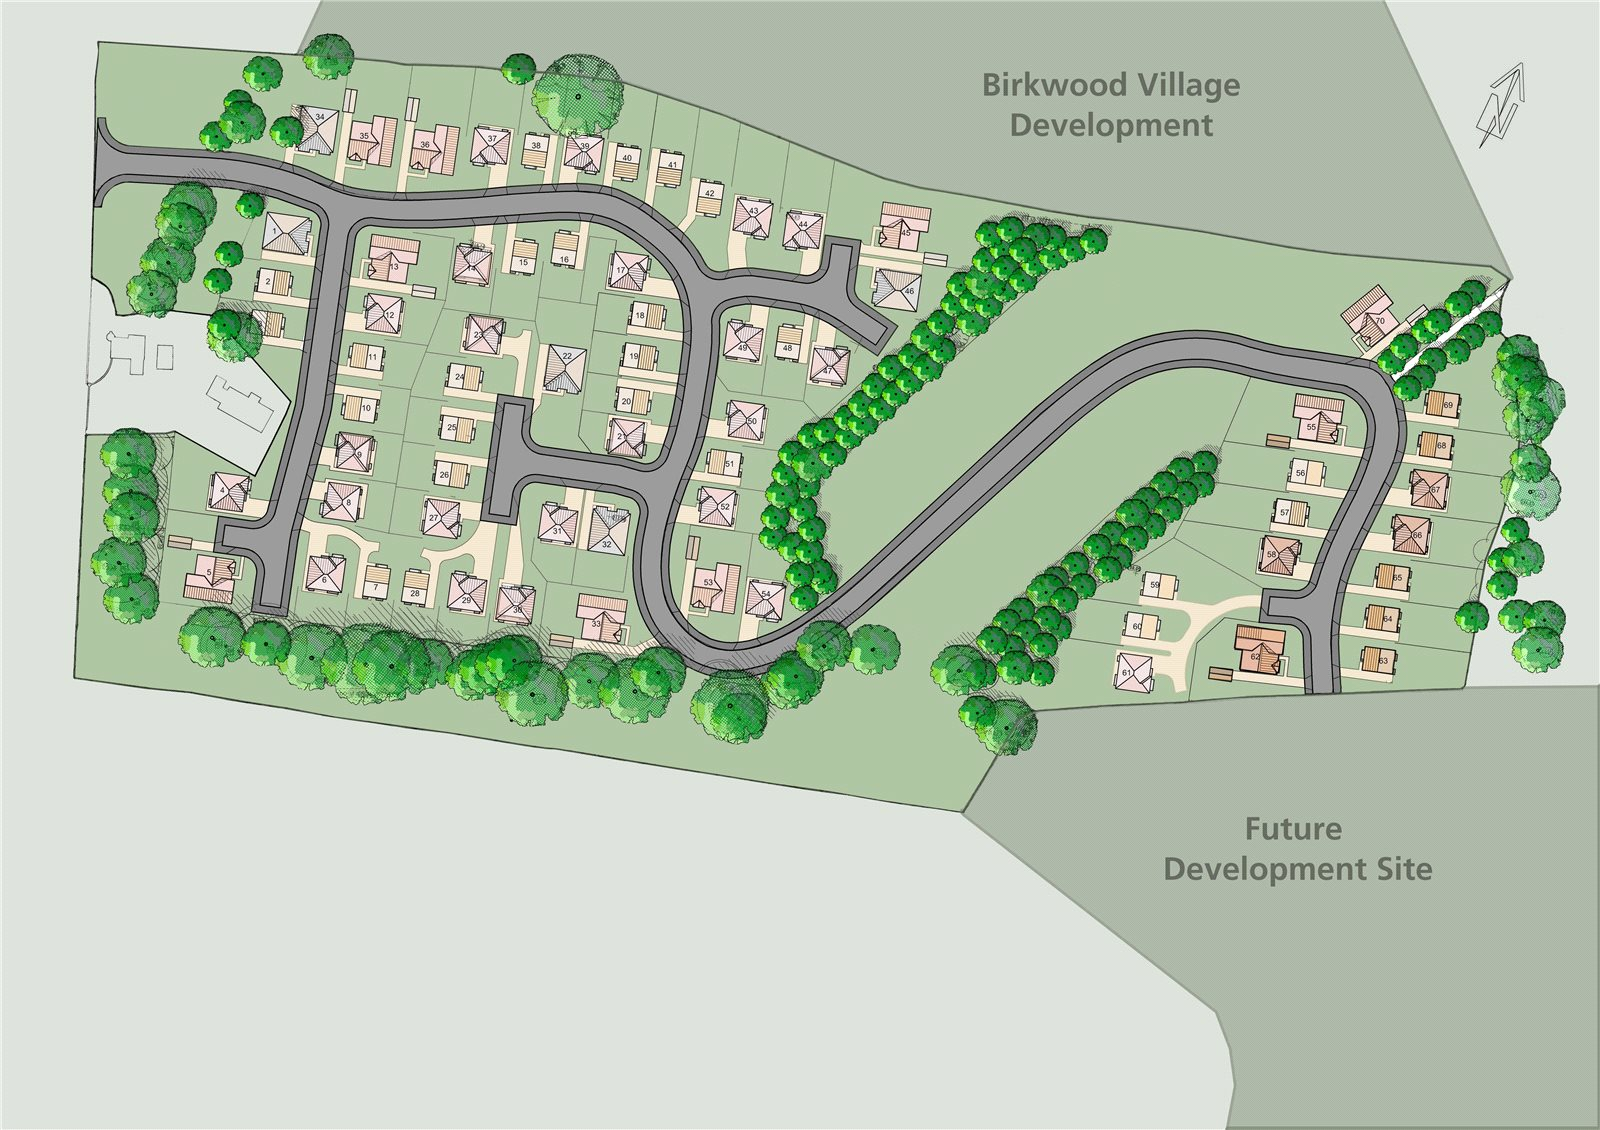 Land / Lot for Sale at Phase 5, Birkwood Estate, New Trows Road, Birkwood, ML11 Scotland